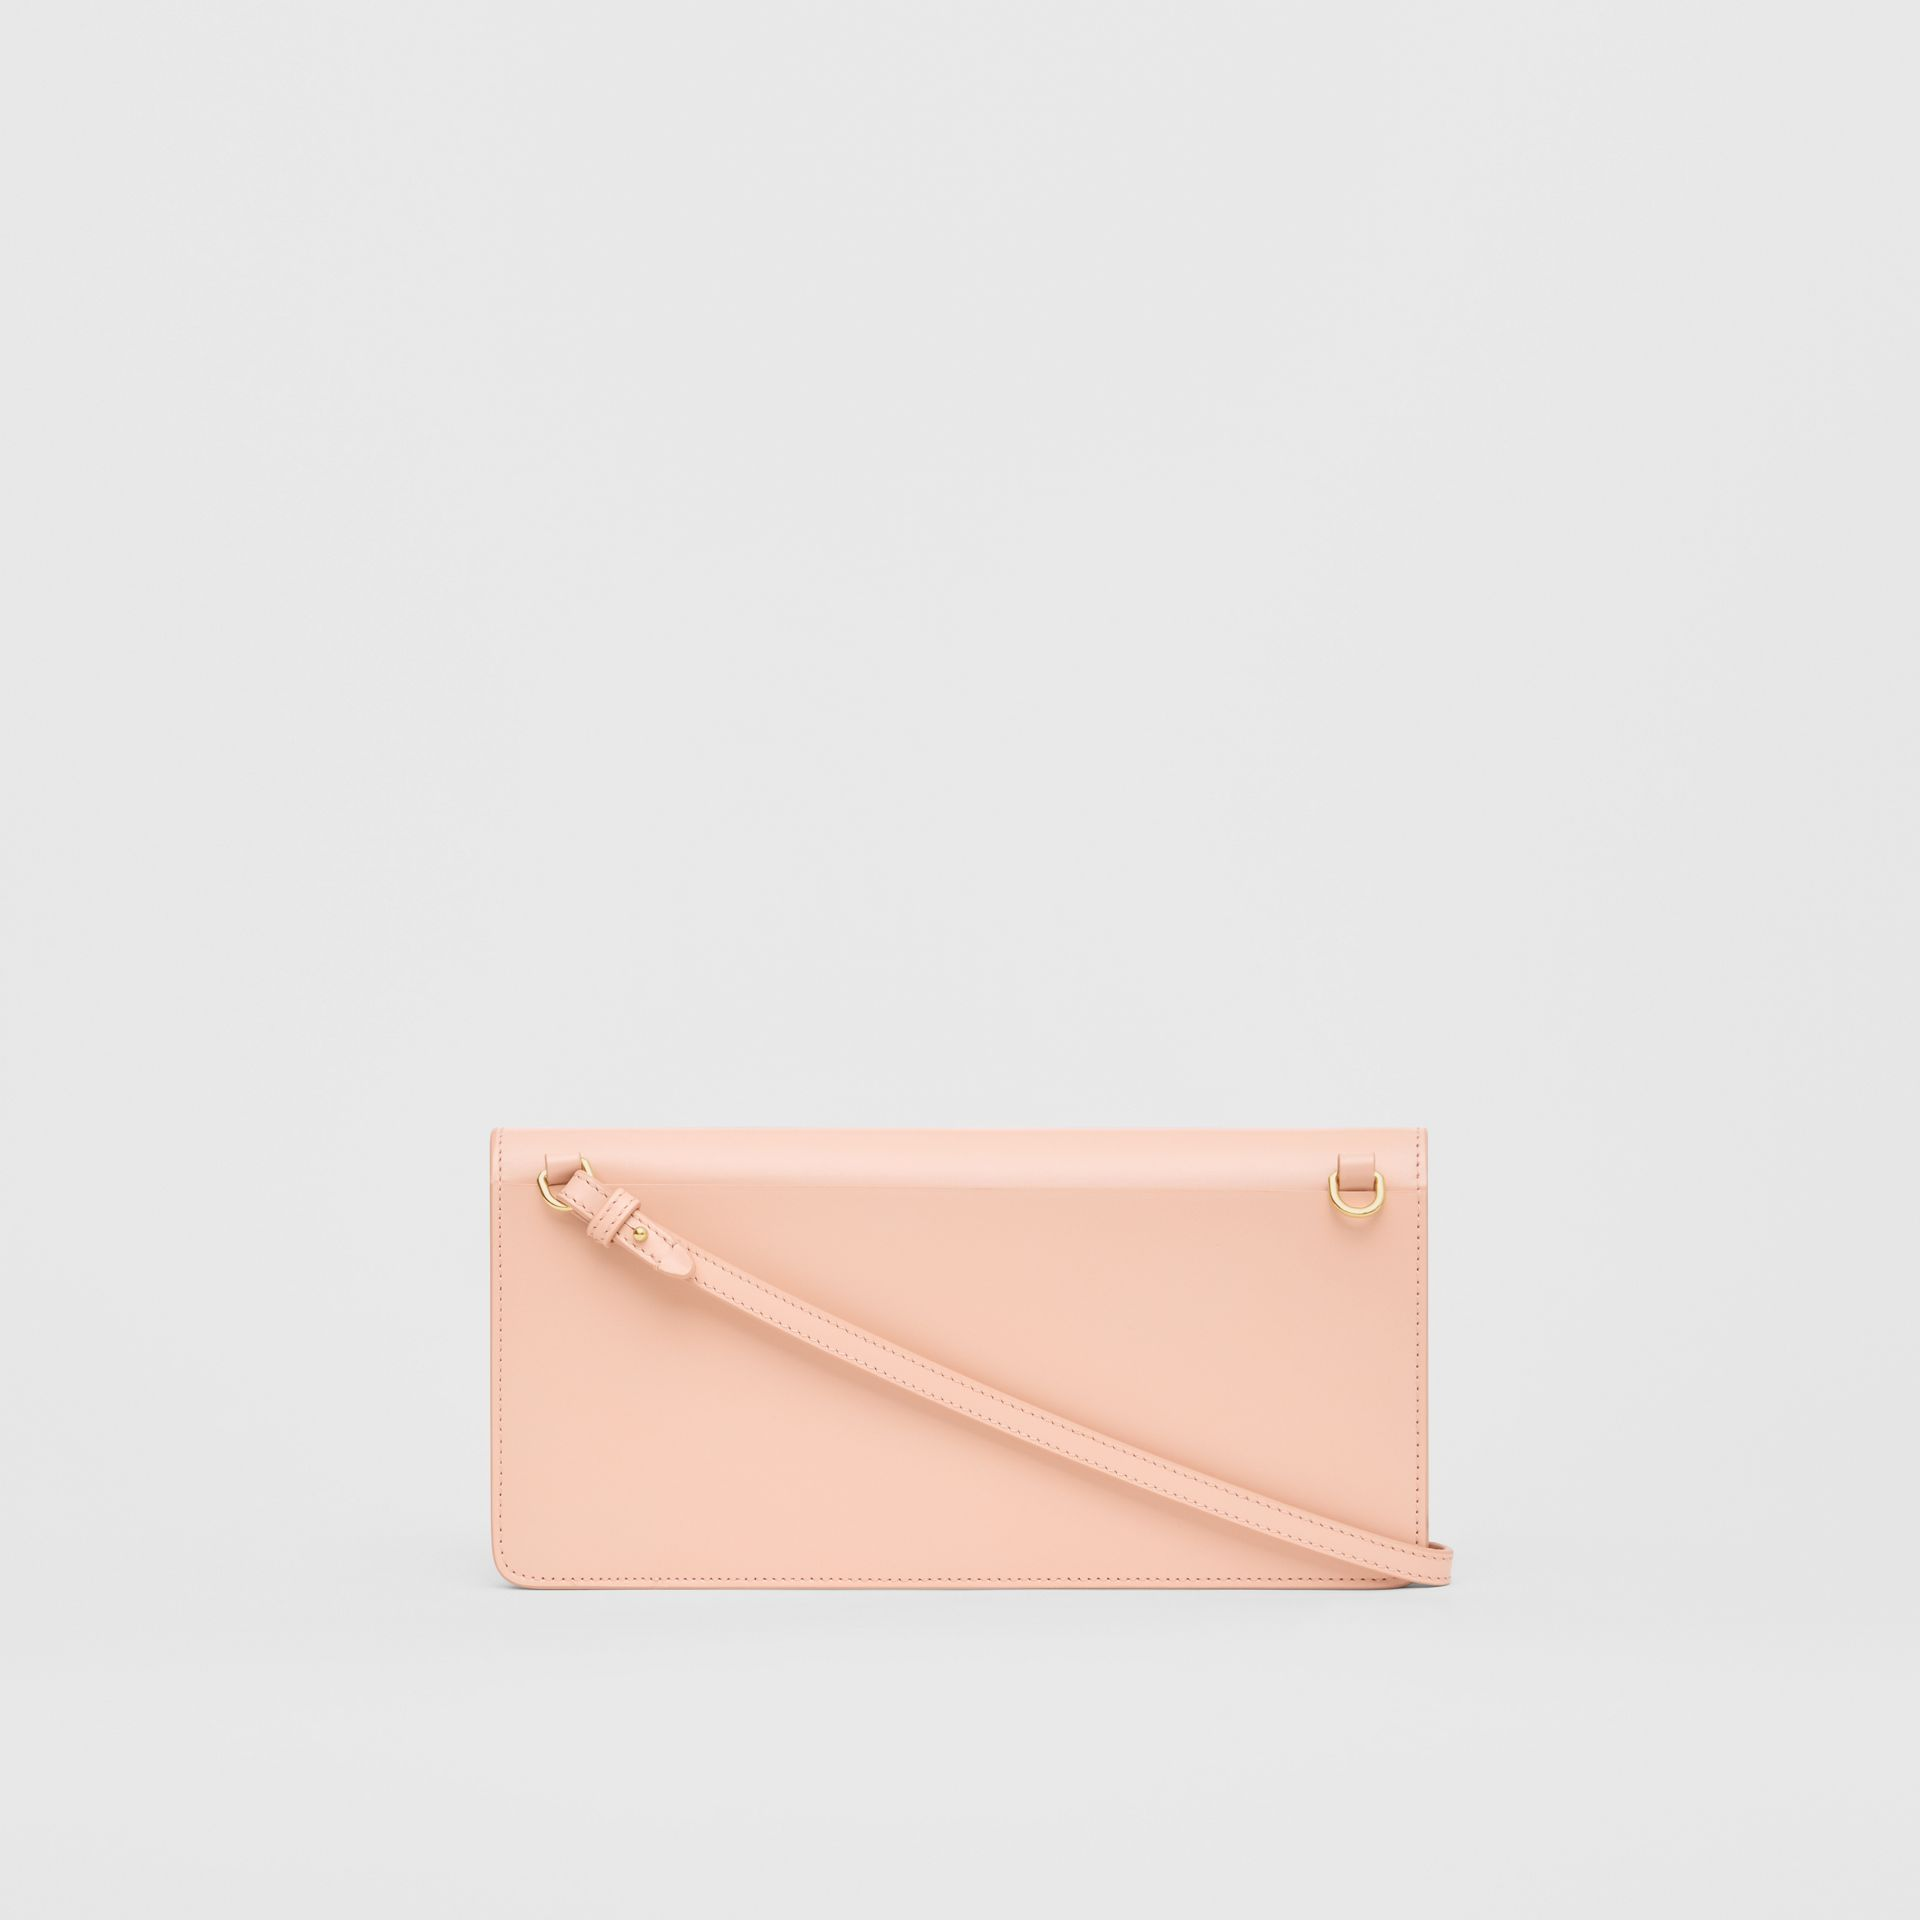 Horseferry Print Leather Bag with Detachable Strap in Blush Pink - Women | Burberry - gallery image 5